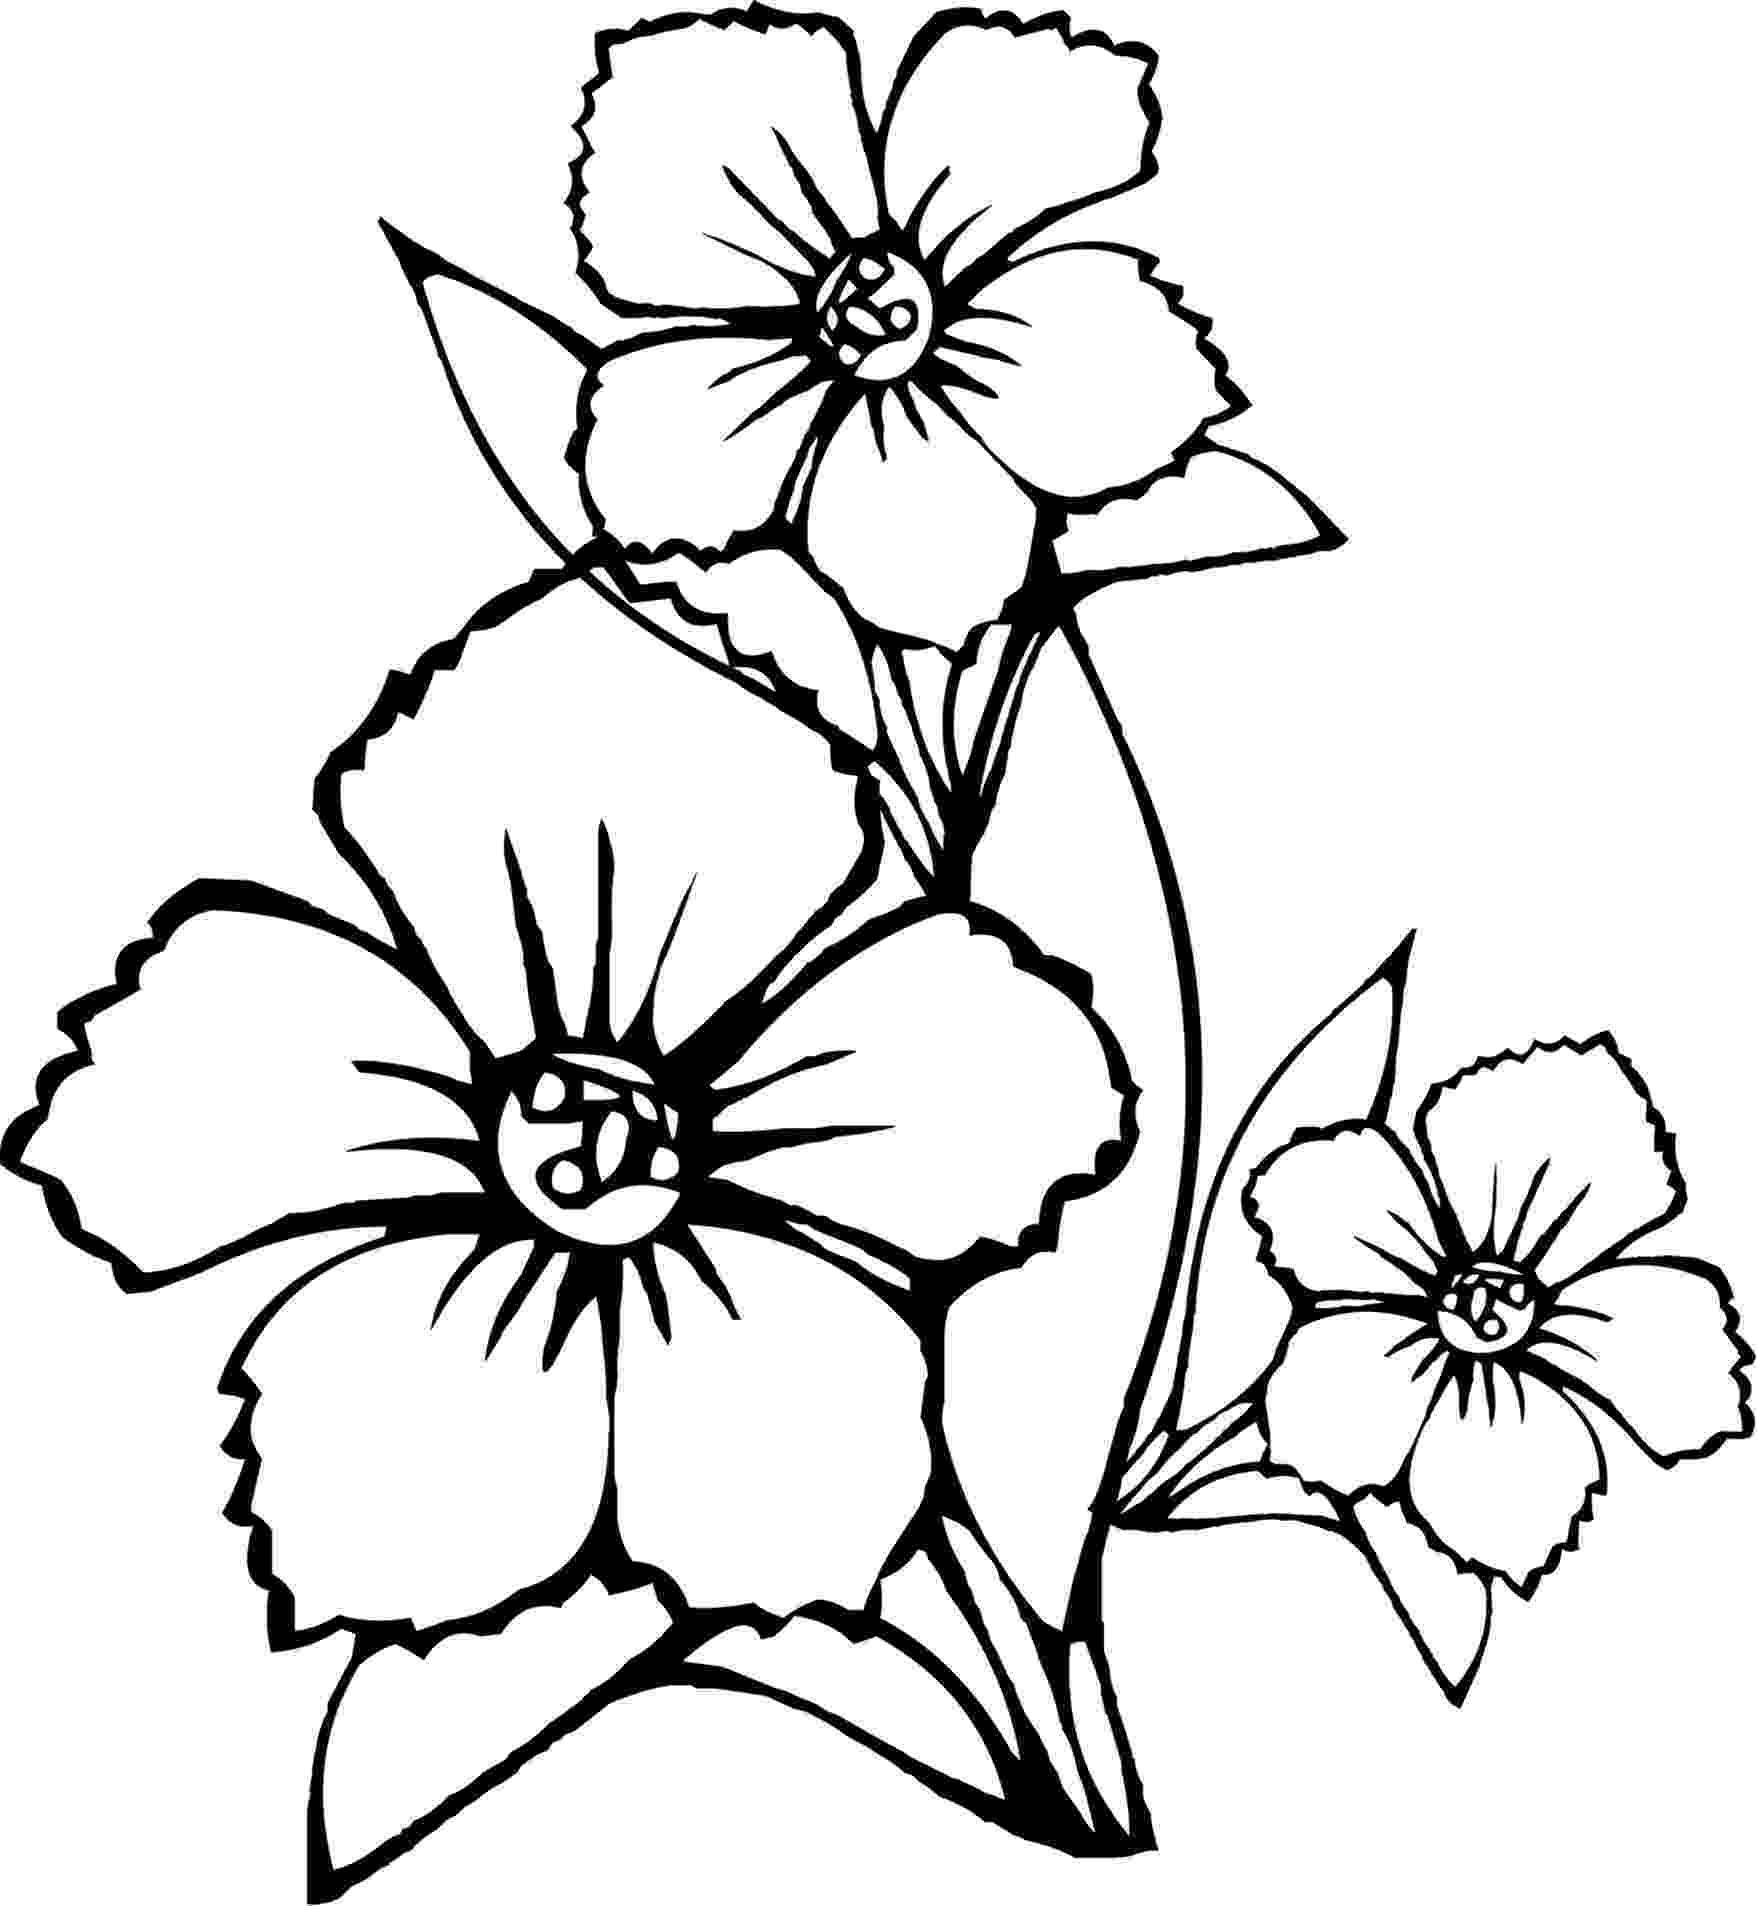 picture of flower for colouring flower pictures to print and color for colouring picture of flower